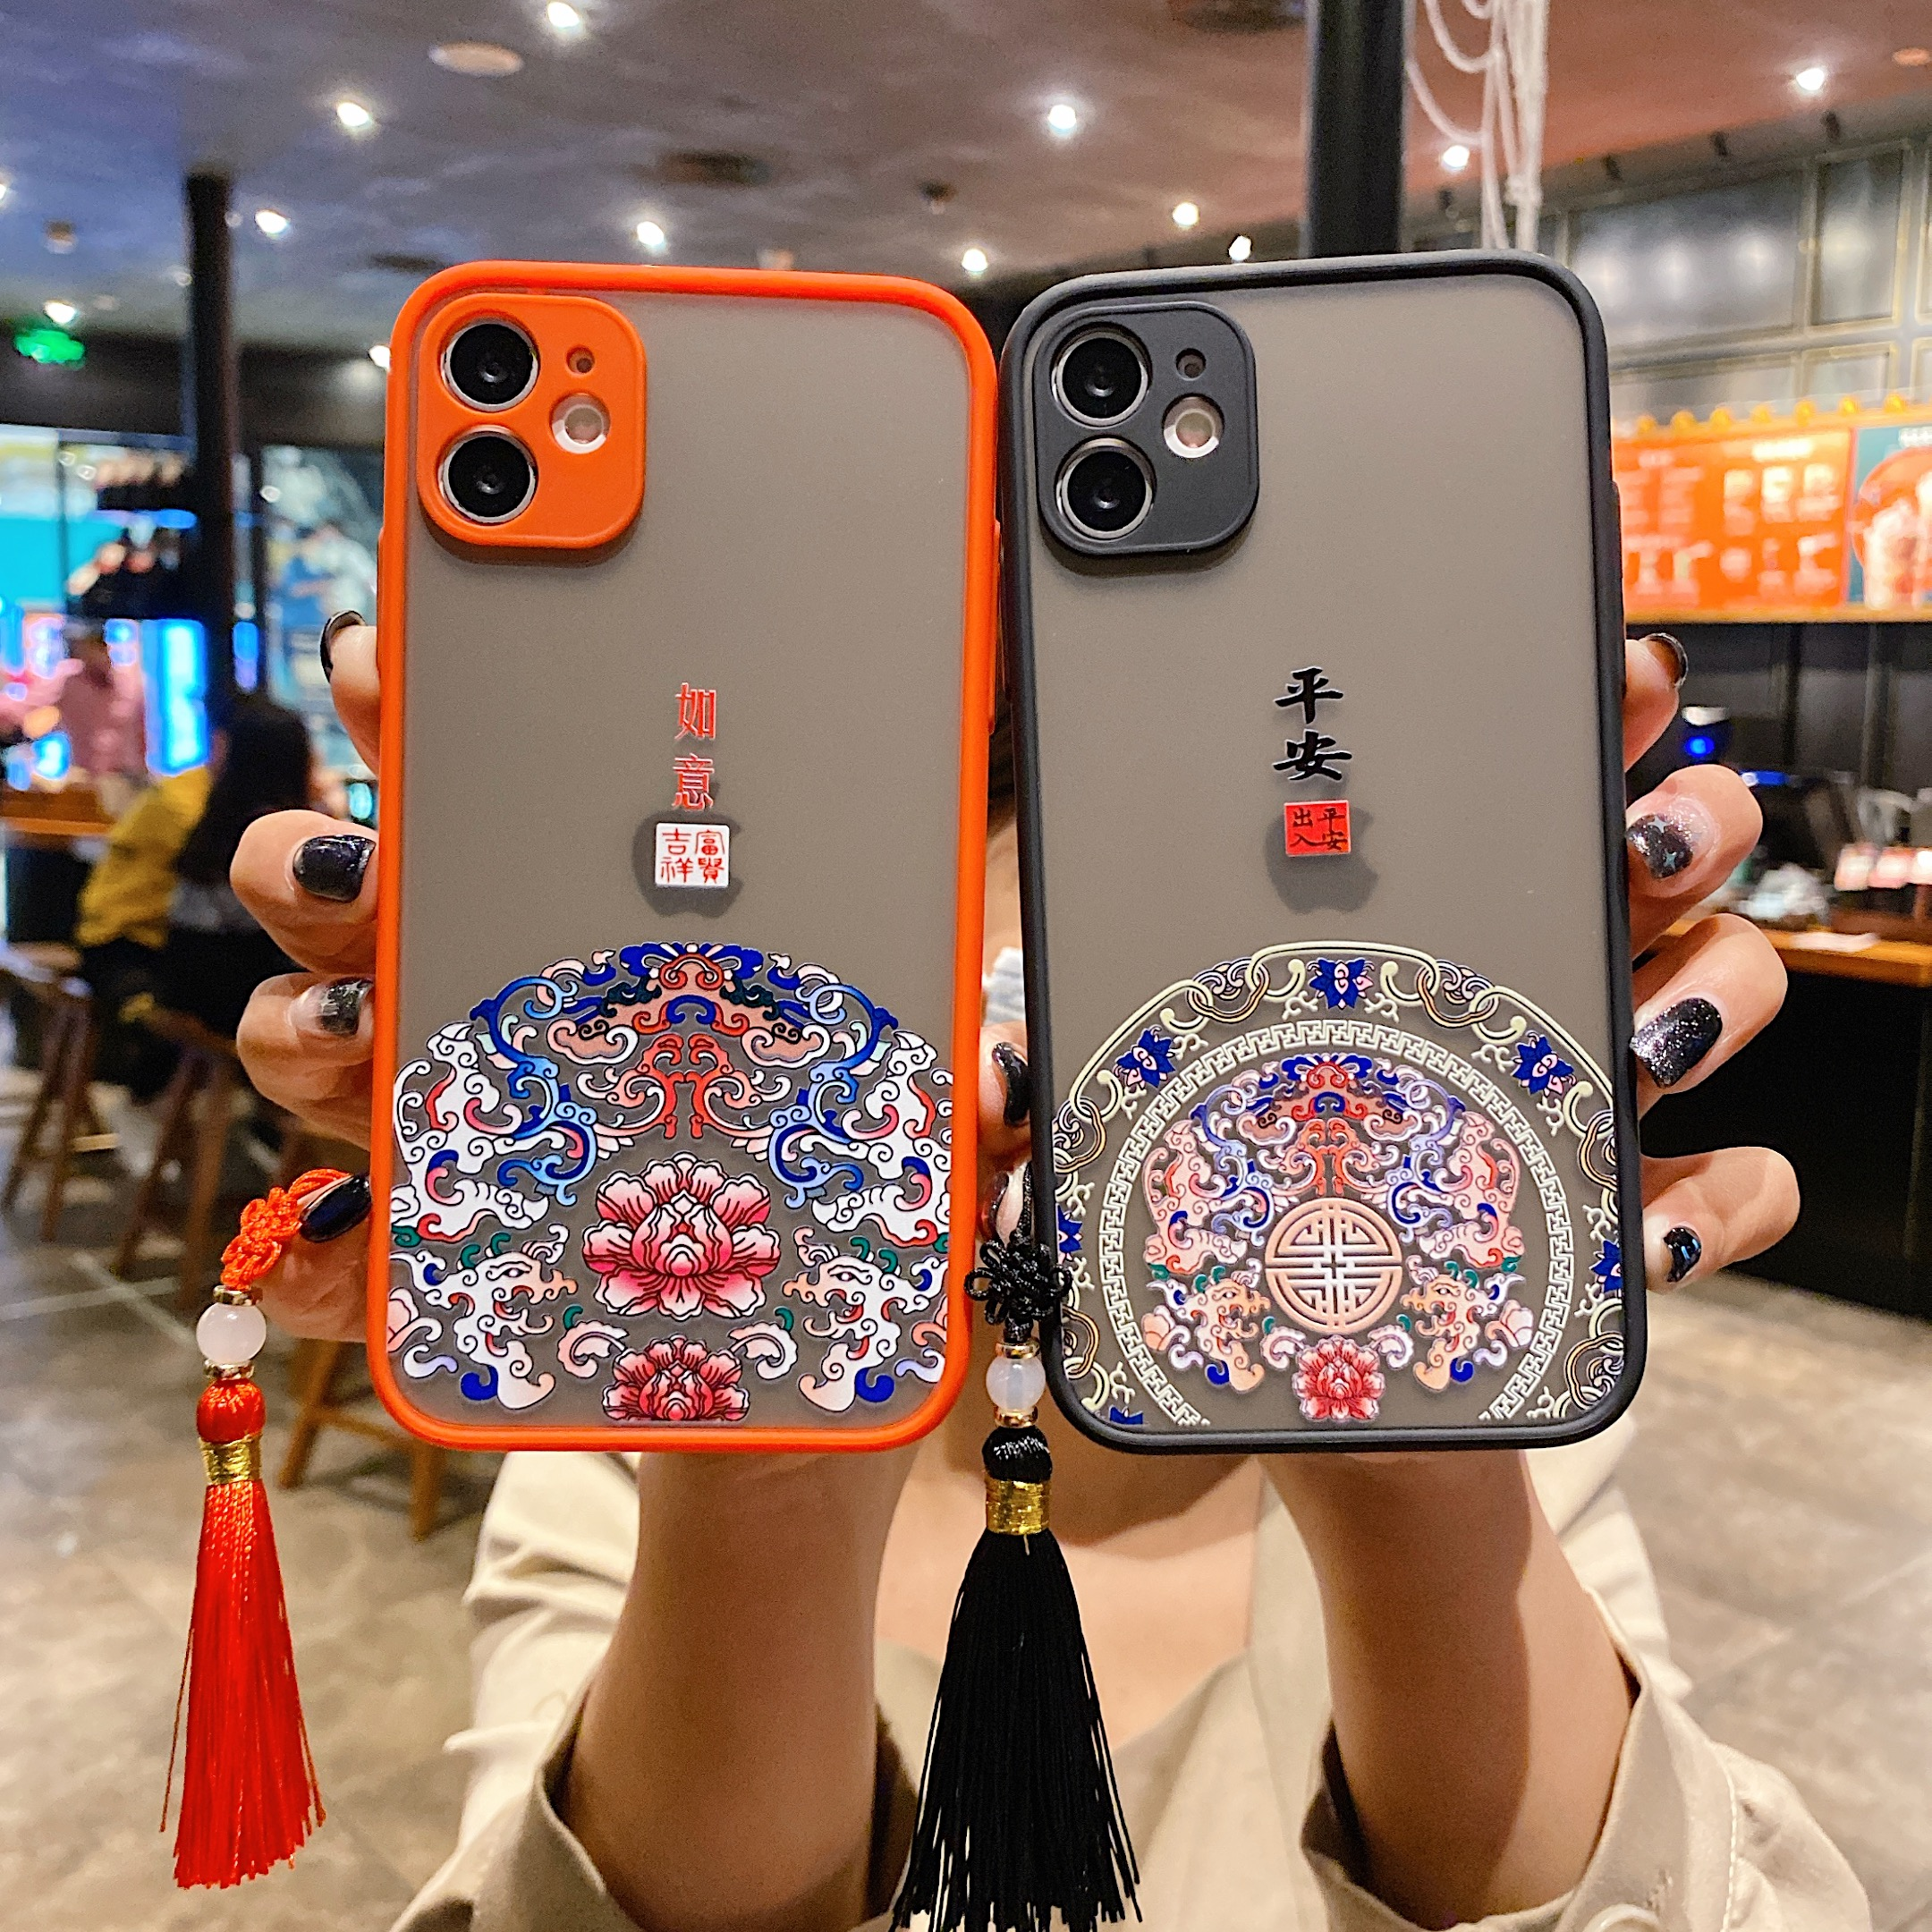 Chinese Auspicious Retro Palace Design Skin Feeling Phone Cases For Iphone 12 Mini 6 6S 7 8 Plus 11 Pro X XR Xs Max Tassel Cover